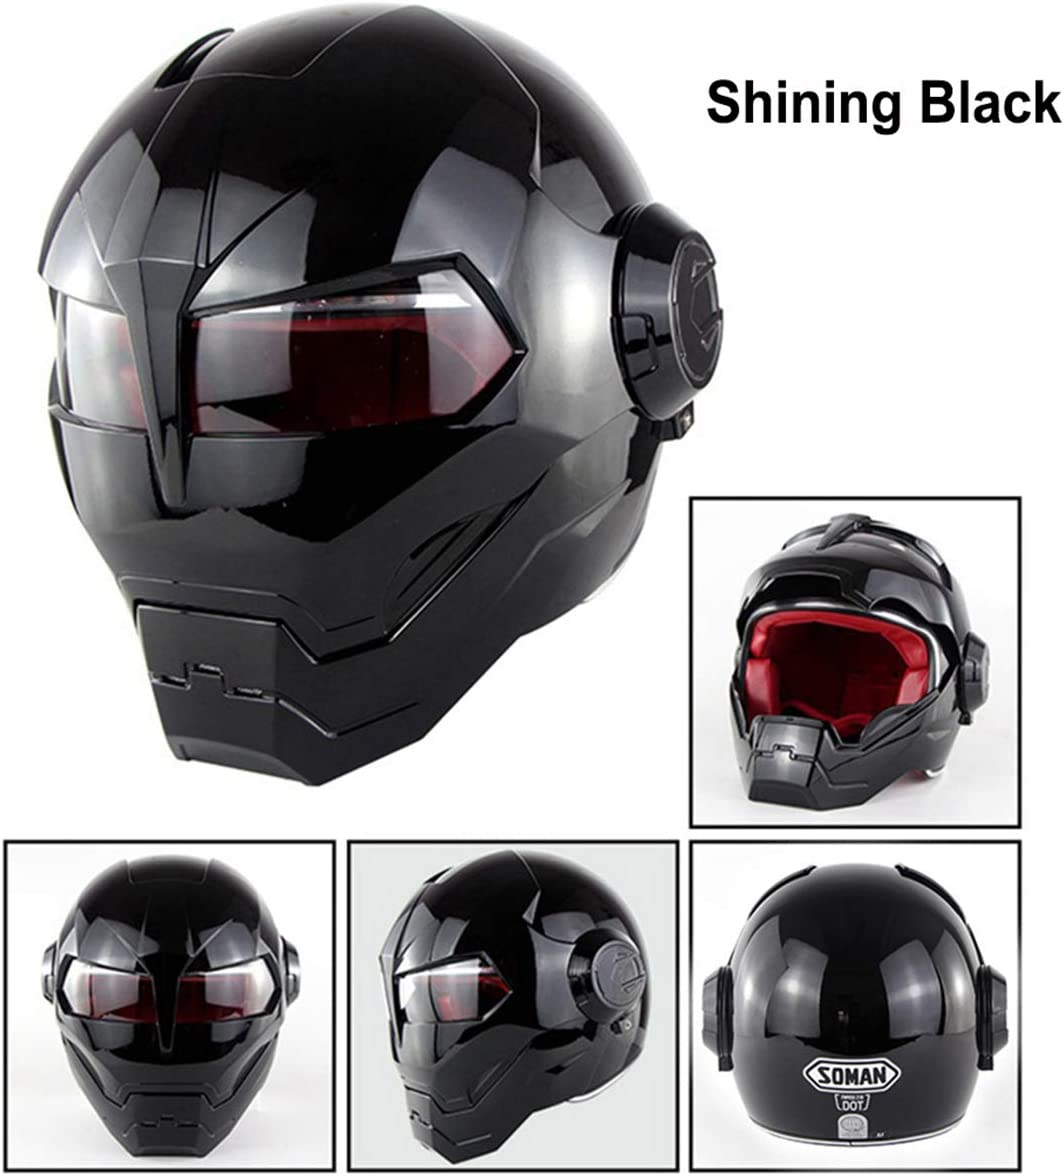 Full Face Motorcycle Helmet,Vintage Harley Motorcycle Helmet Full Face Protection for Adult Men Women Moped Scooter Flip Up Helmet Crash Helmets Comply with Road Laws Personality,Shining black-L